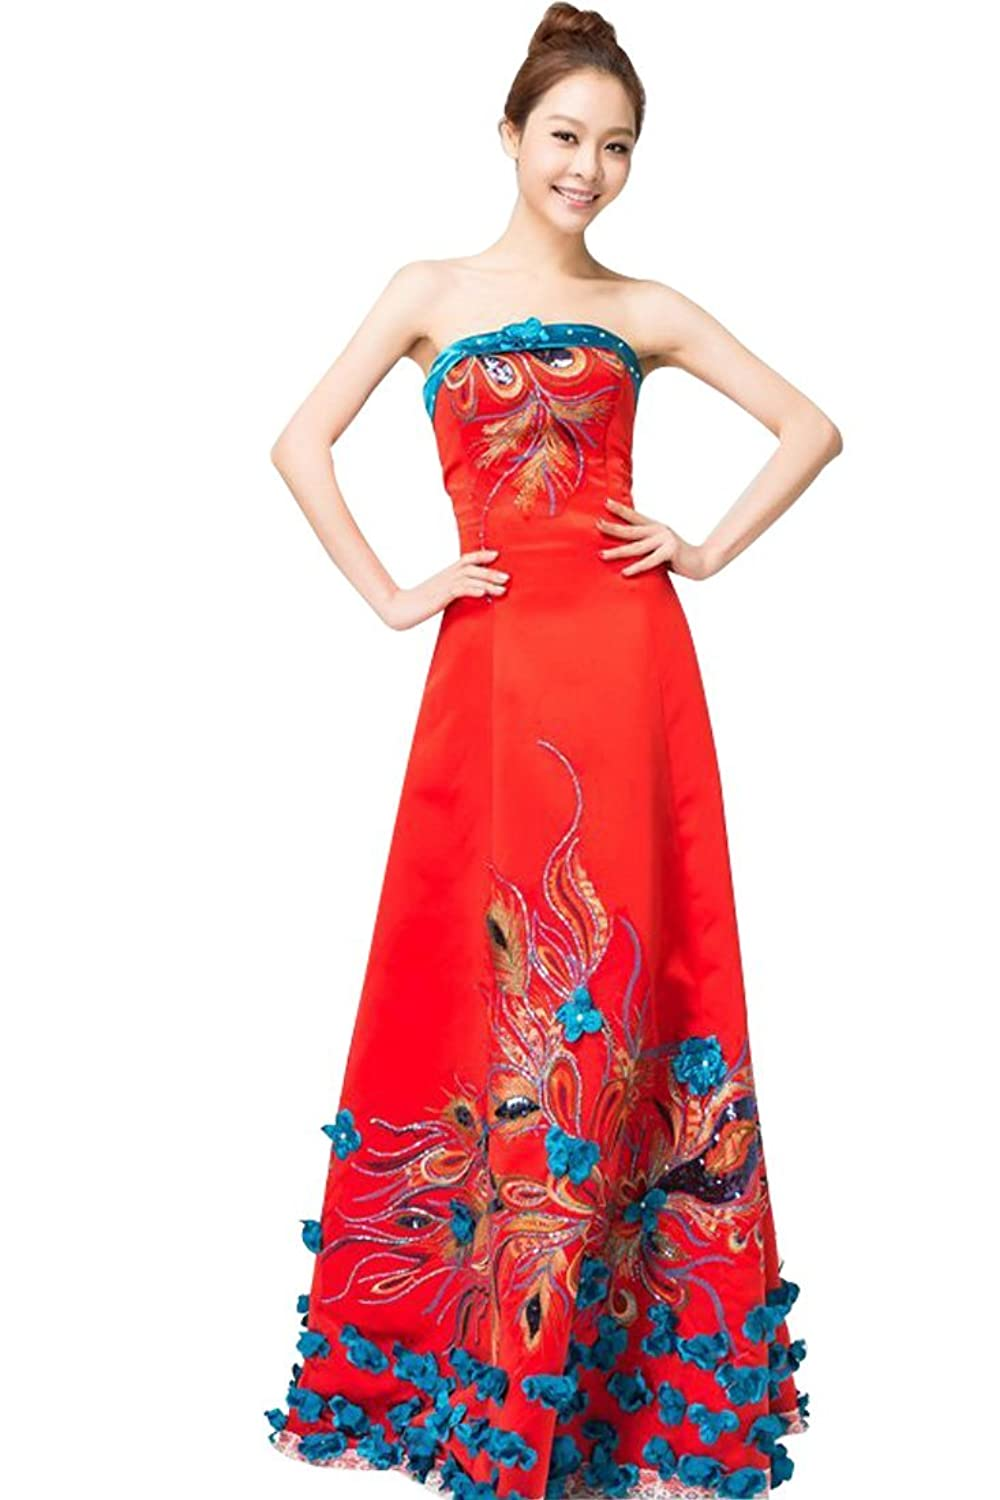 Beauty-Emily Women's Chinese Starpless Peacock Embroidered Evening Prom Dresses